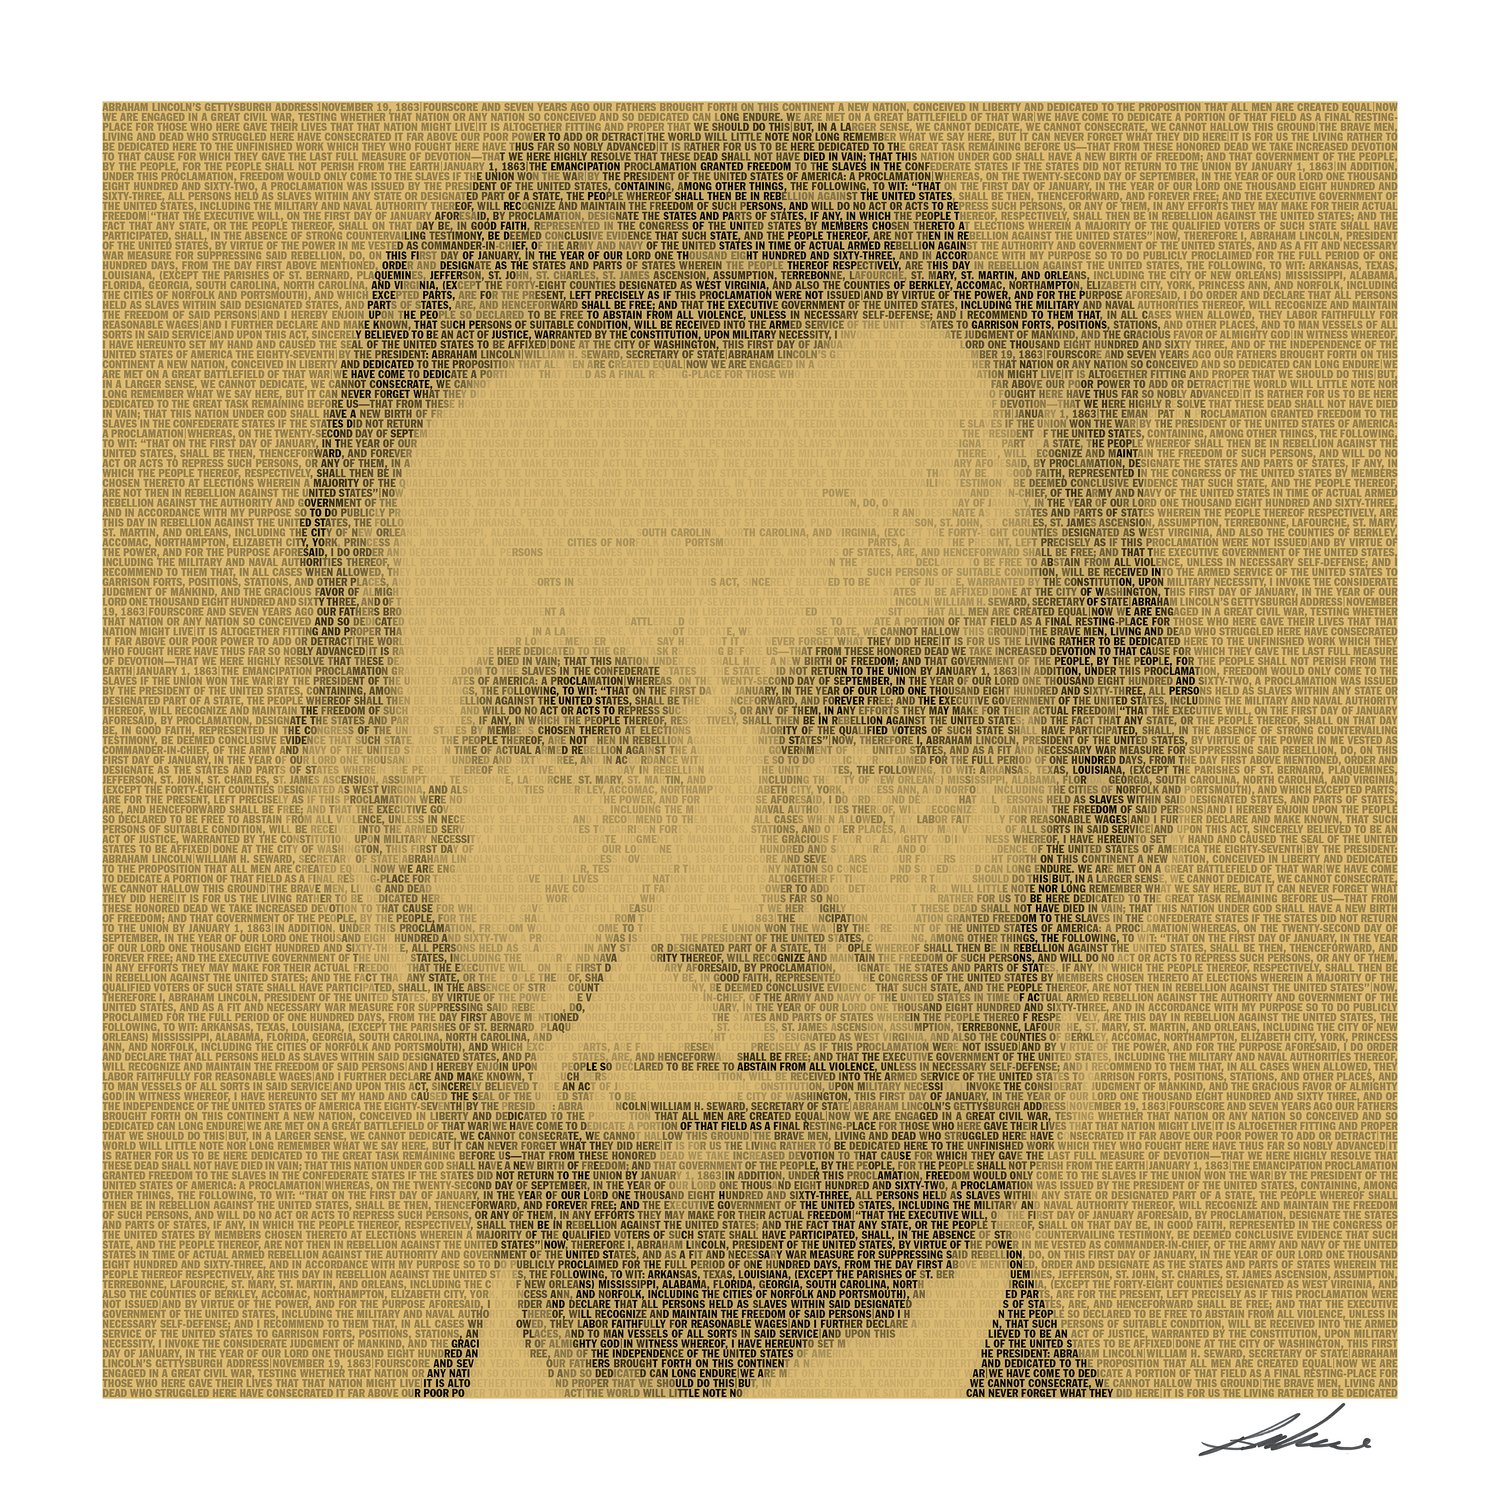 A portrait of Abraham Lincoln is part of the works by Bryce Culverhouse.